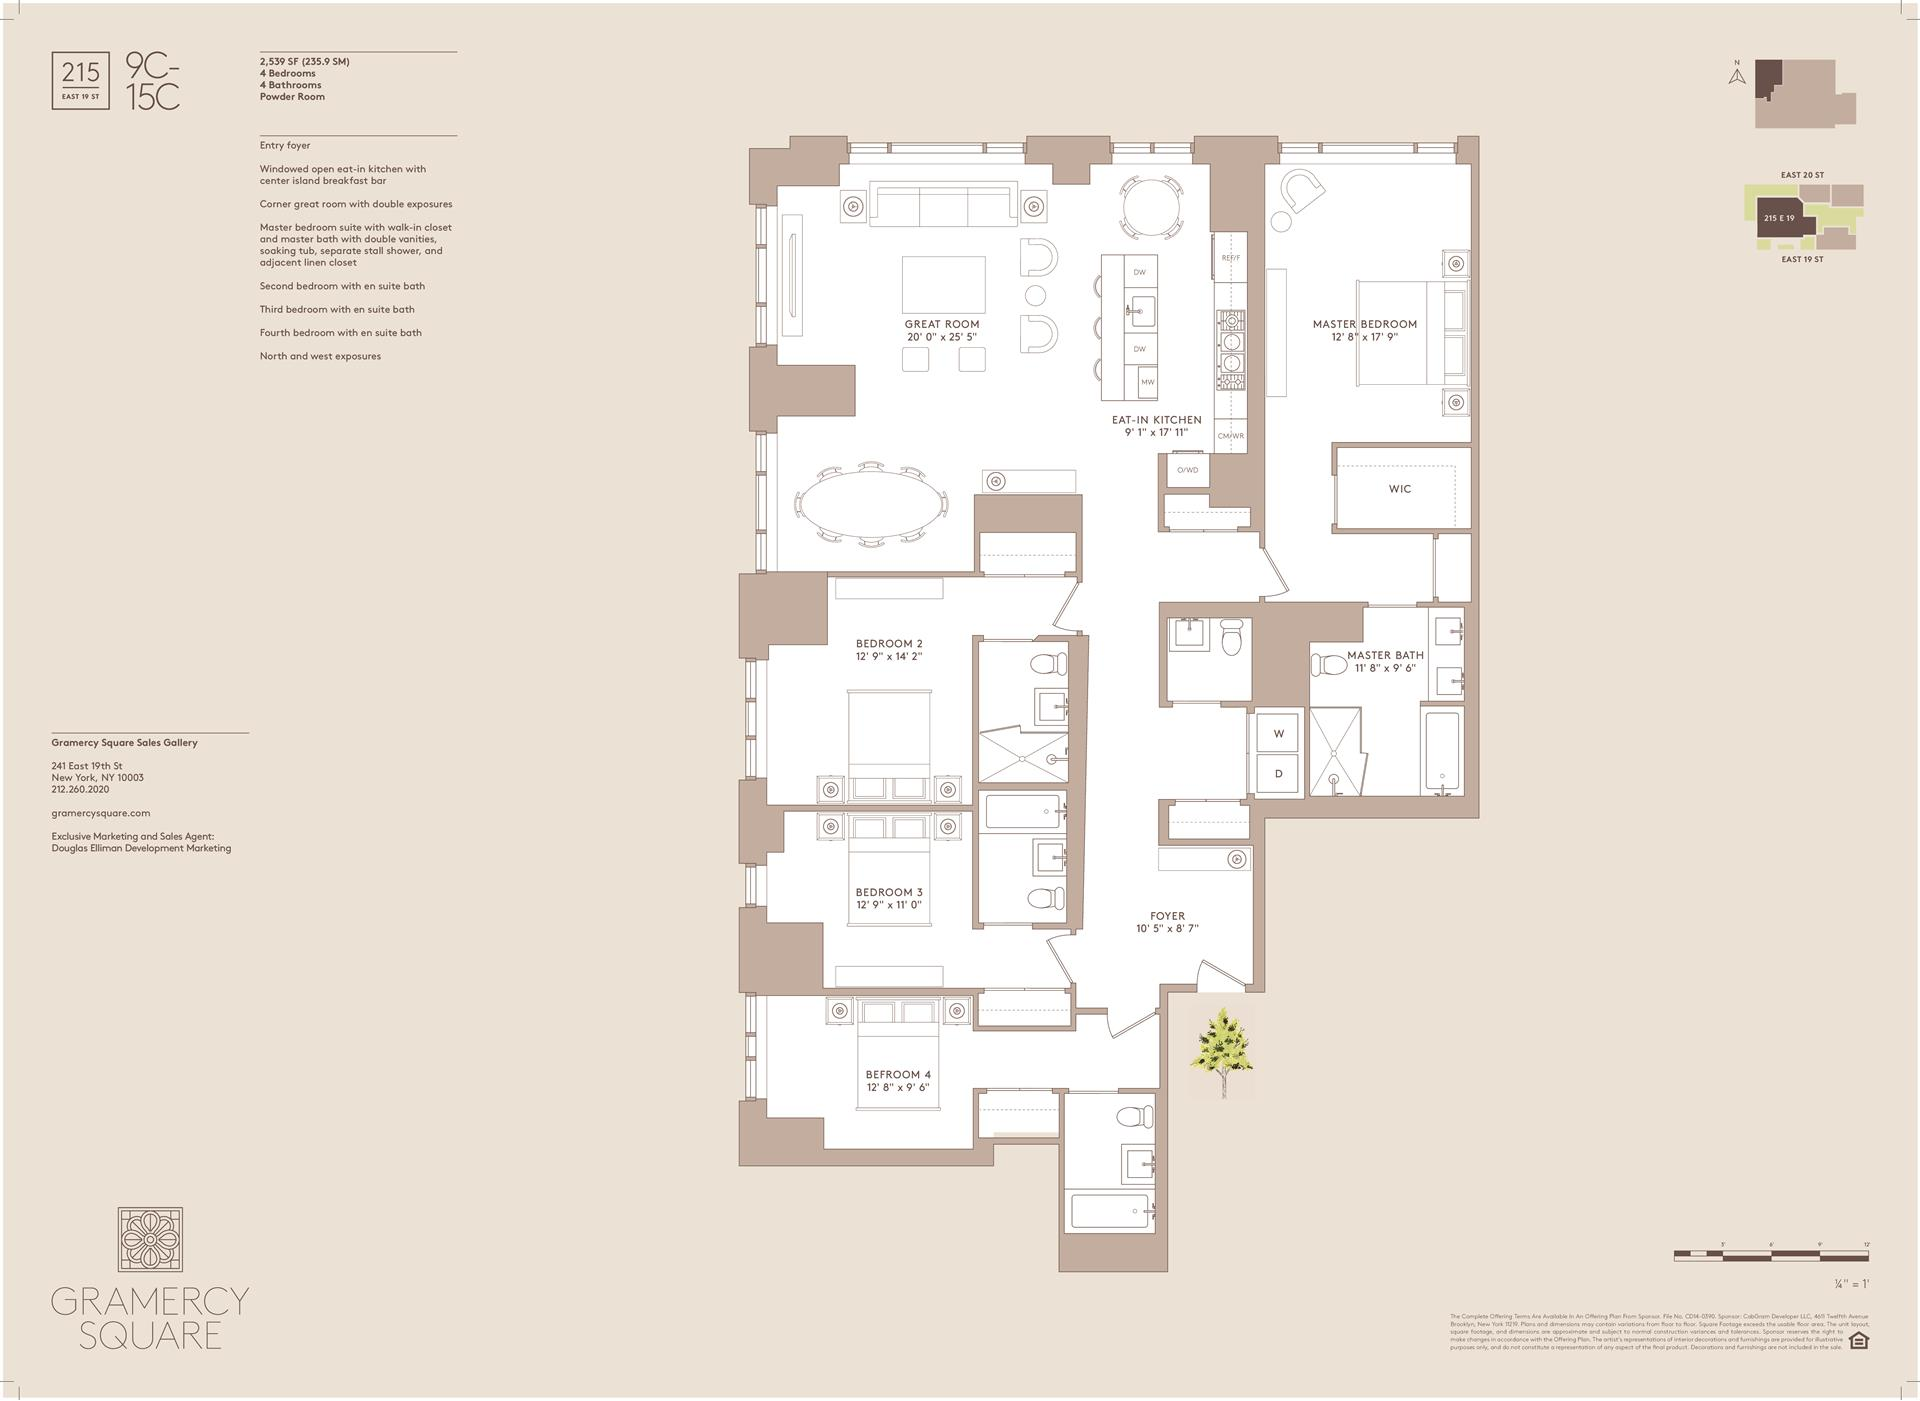 Floor plan of Gramercy Square, 215 East 19th St, 14C - Gramercy - Union Square, New York